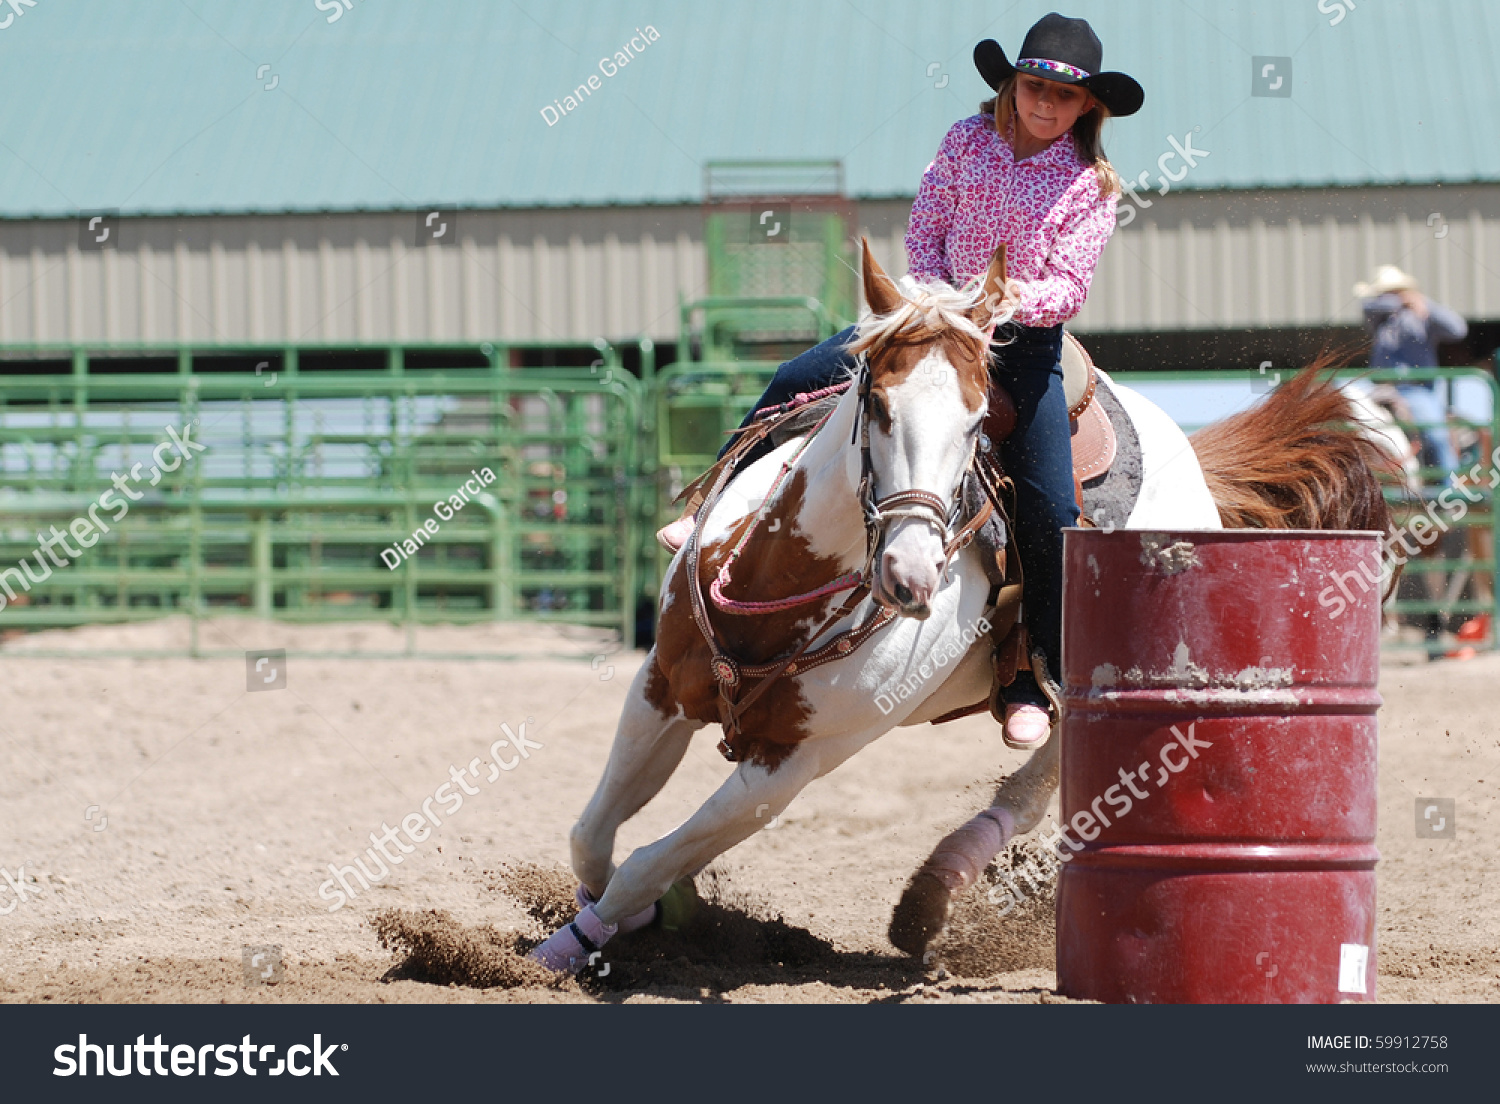 how to get started in barrel racing